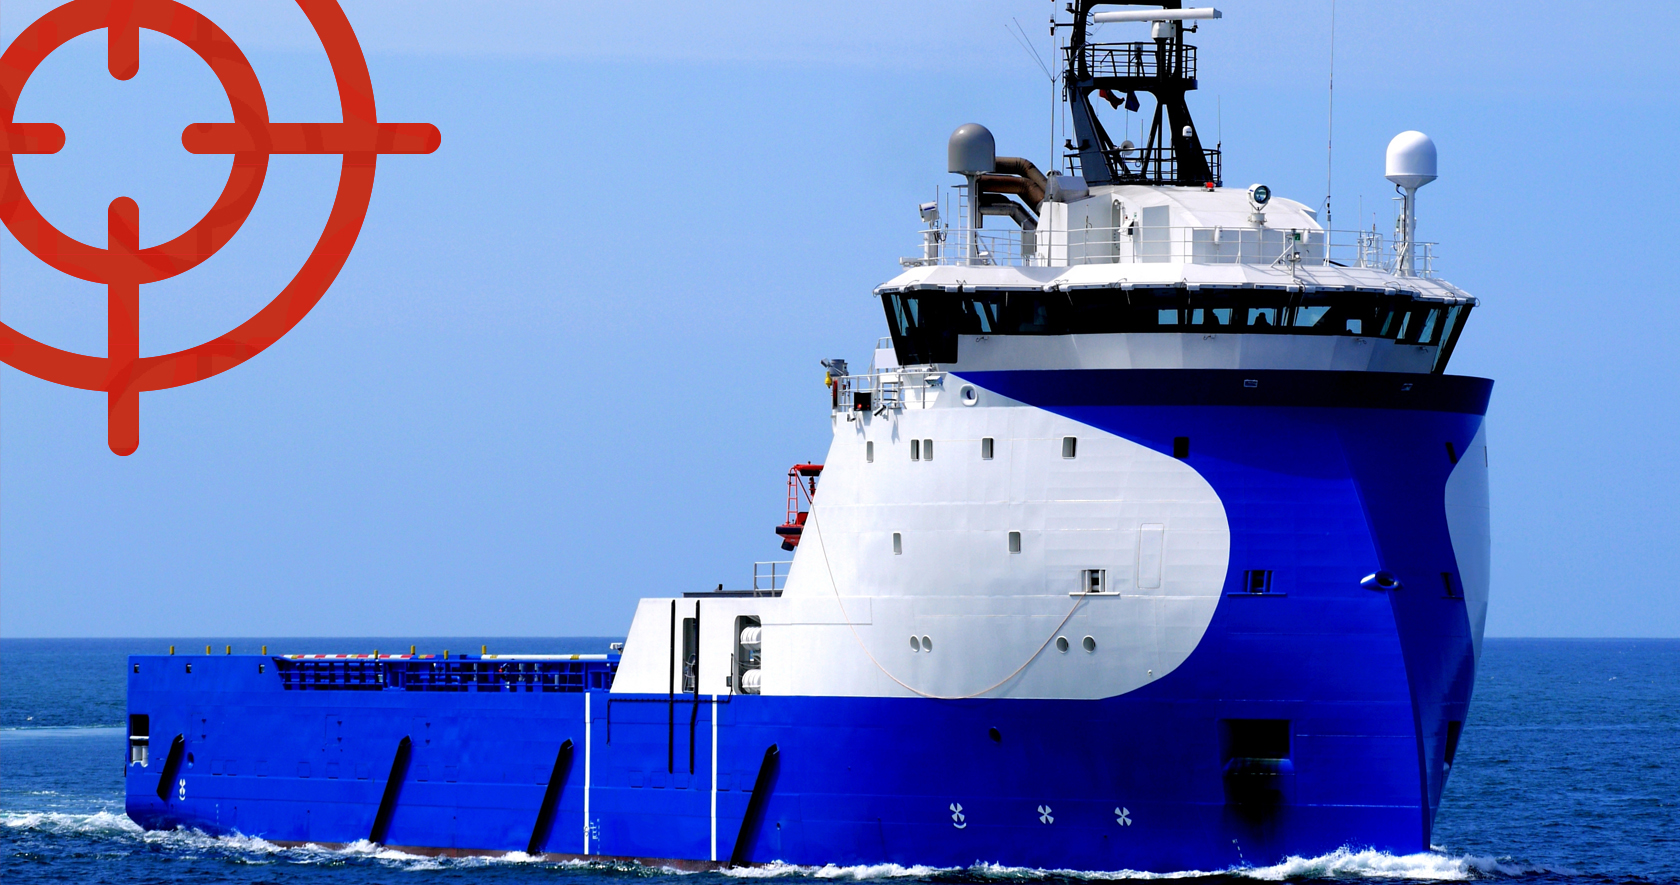 White and blue supplu ship on the ocean.